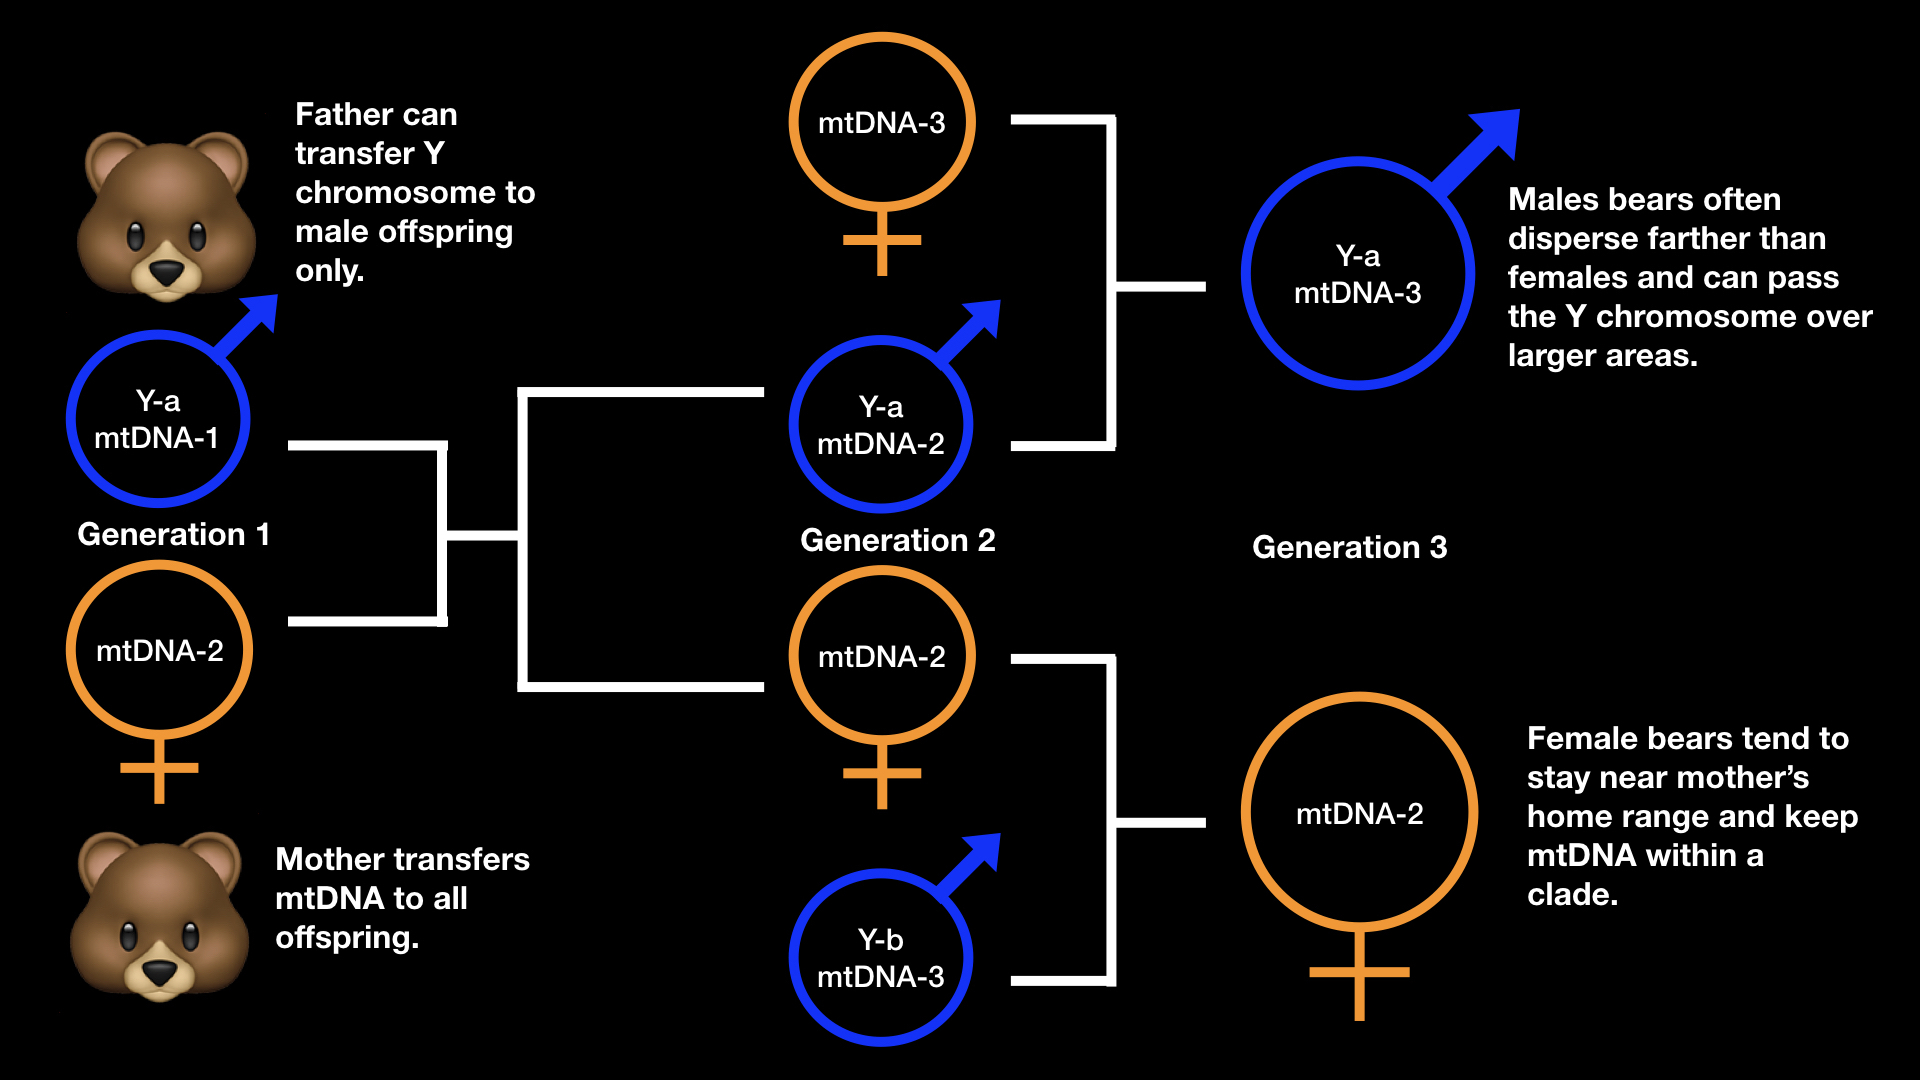 infographic showing hypothetical inheritance of mitochondrial DNA and Y-chromosome through three generations of bears.